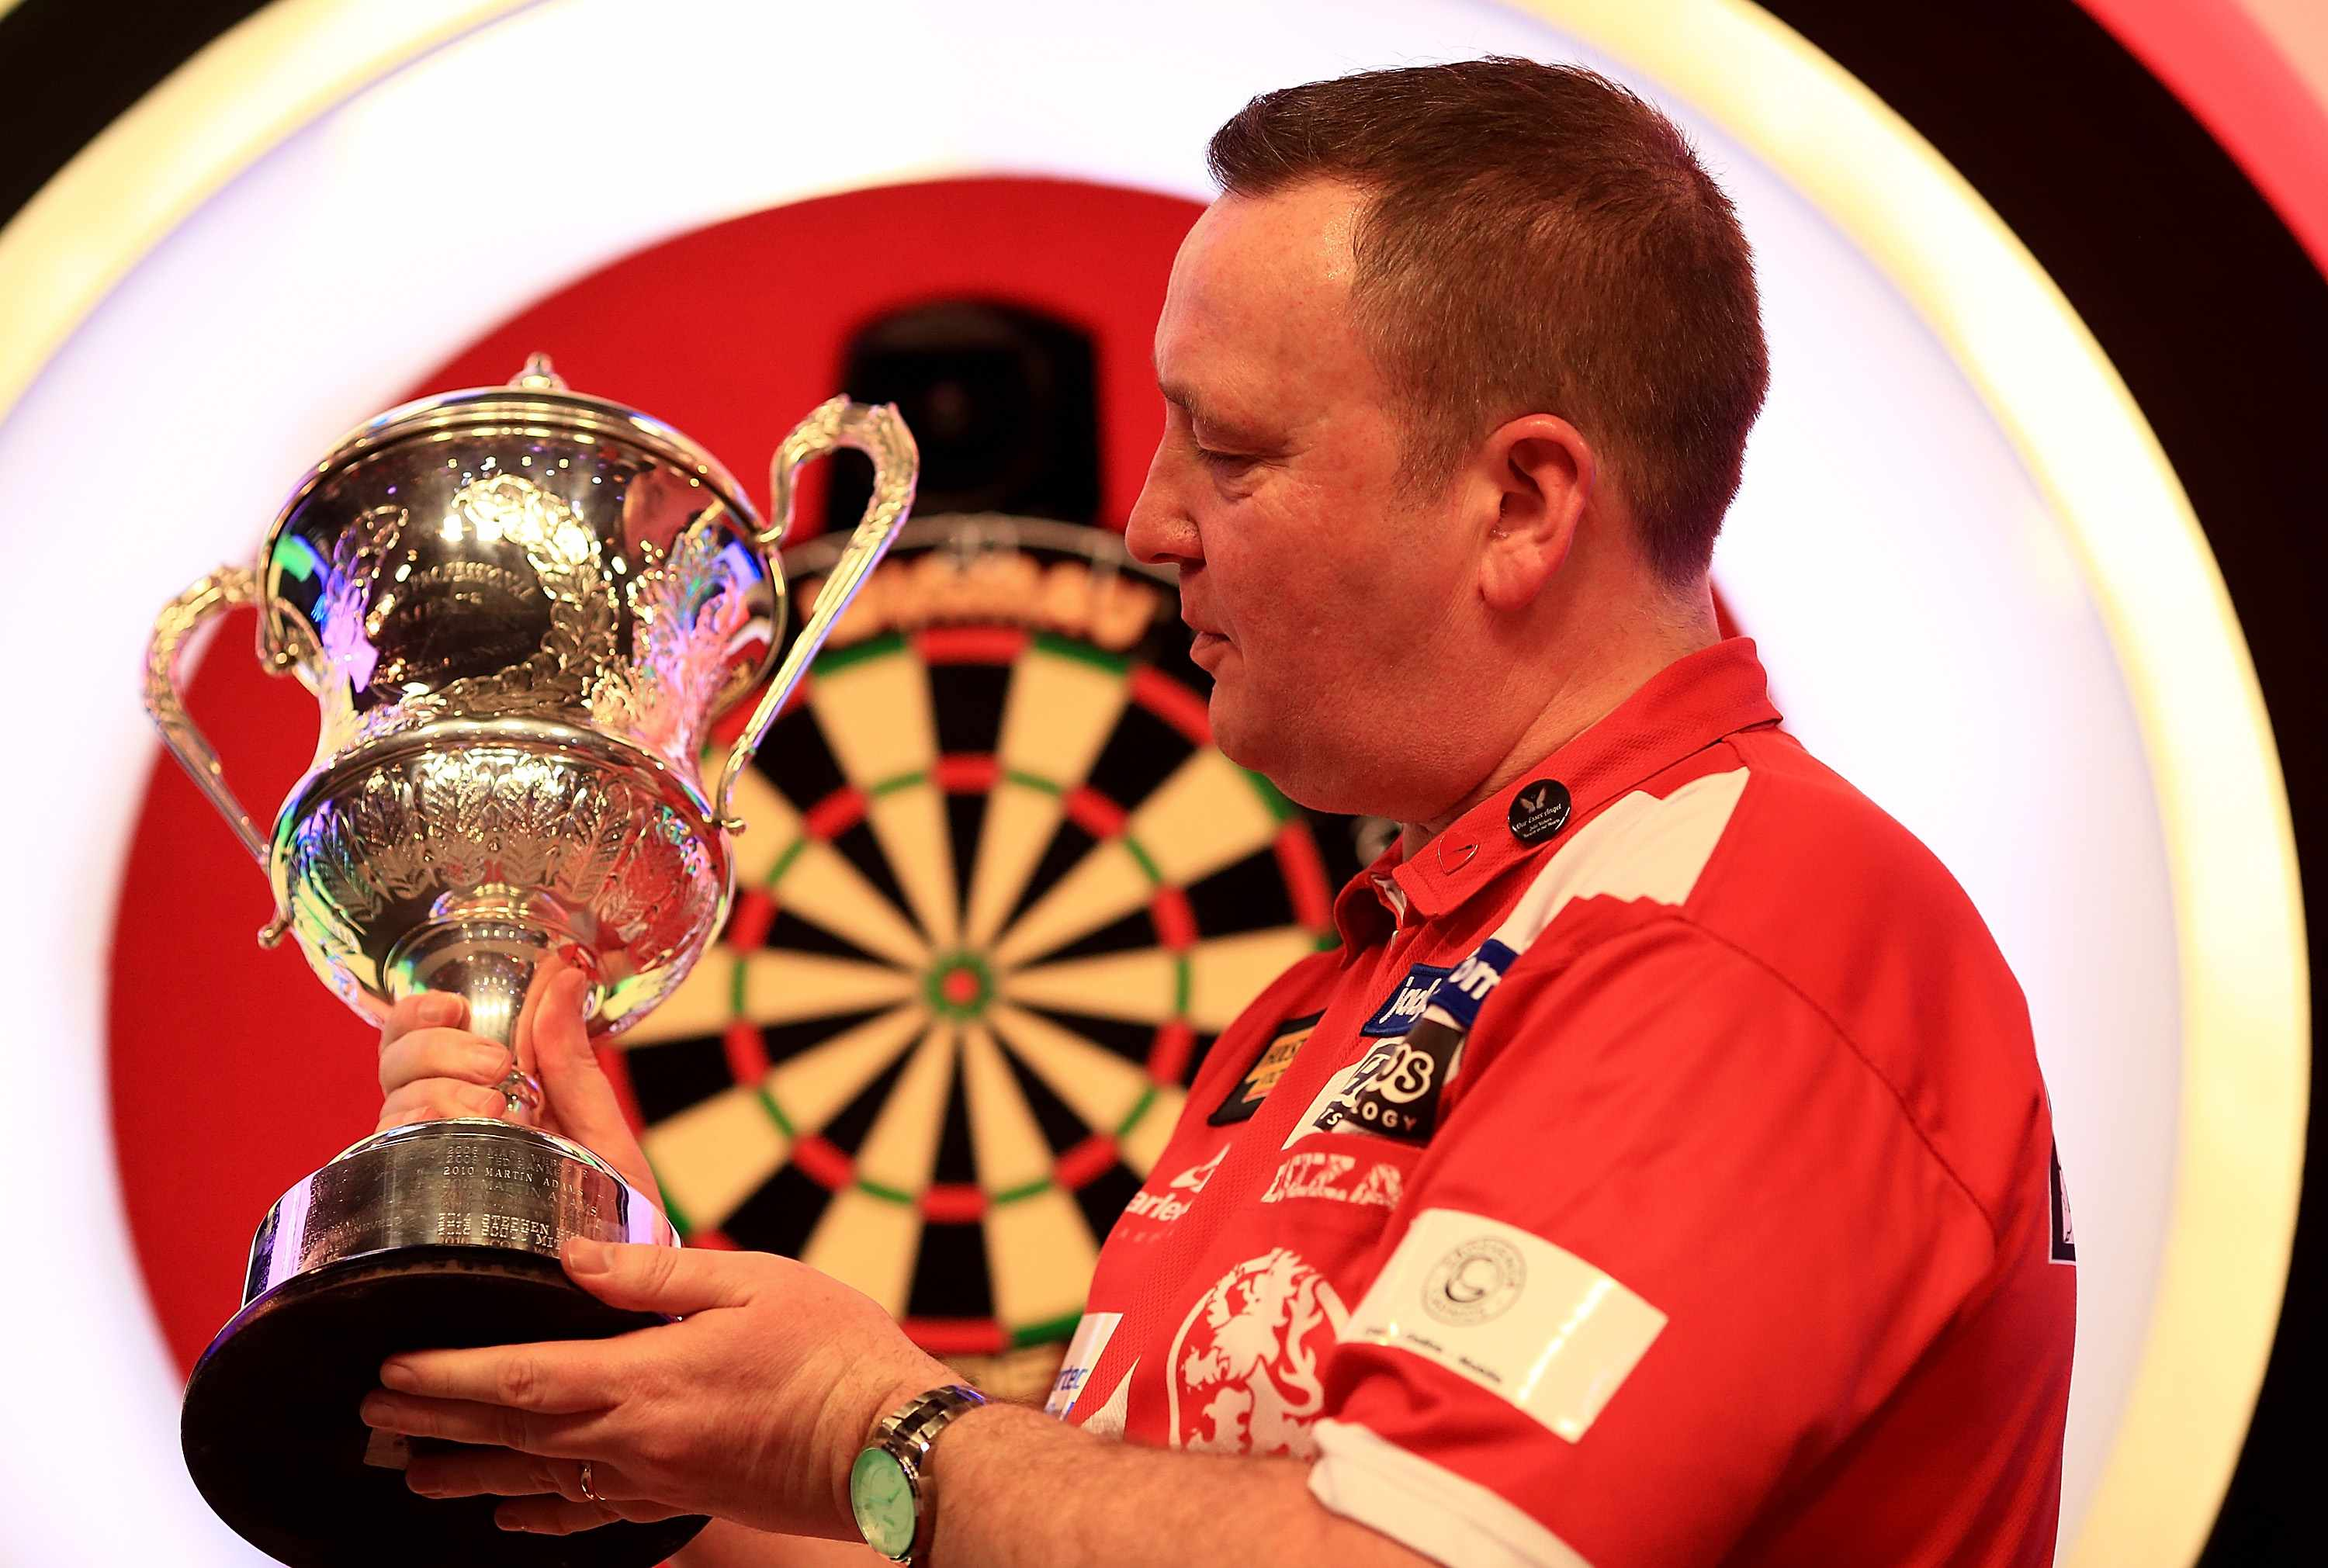 FRIMLEY, ENGLAND - JANUARY 15:  Glen Durrant of England celebrates with the trophy after defeating Danny Noppert of The Netherlands in the final of The BDO Lakeside World Professional Darts Championships on January 15, 2017 in Frimley, England.  (Photo by Ben Hoskins/Getty Images)